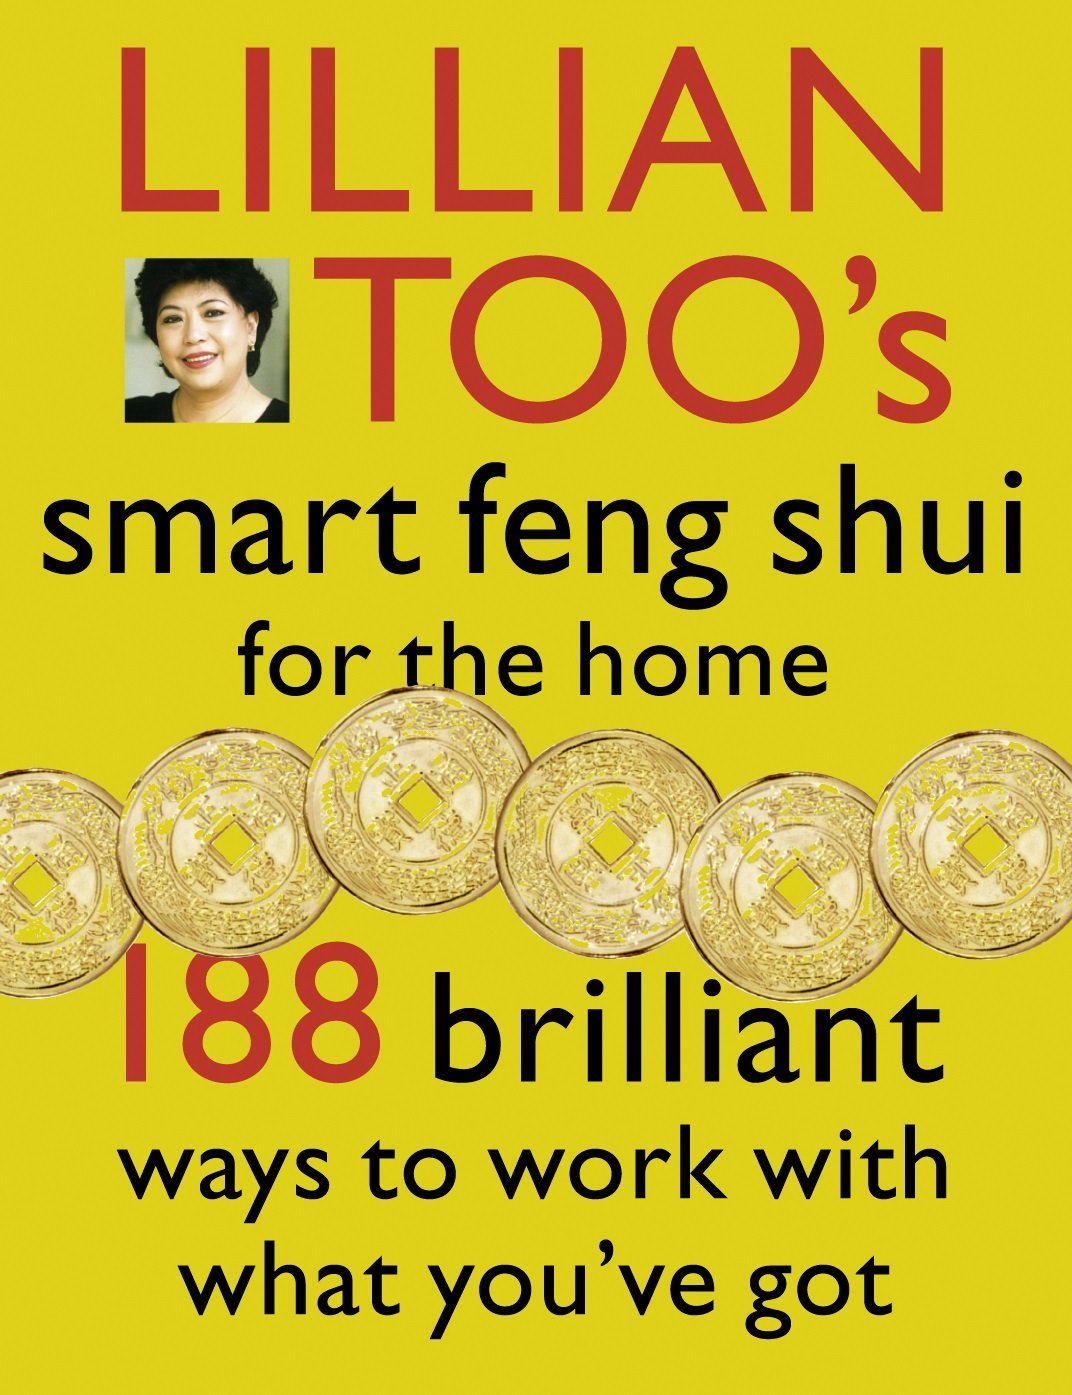 Lillian Too's Smart Feng Shui For The Home  188 Brilliant Ways To Work With What You've Got  188 Brilliant Ways To Work With What You've Got  English Edition